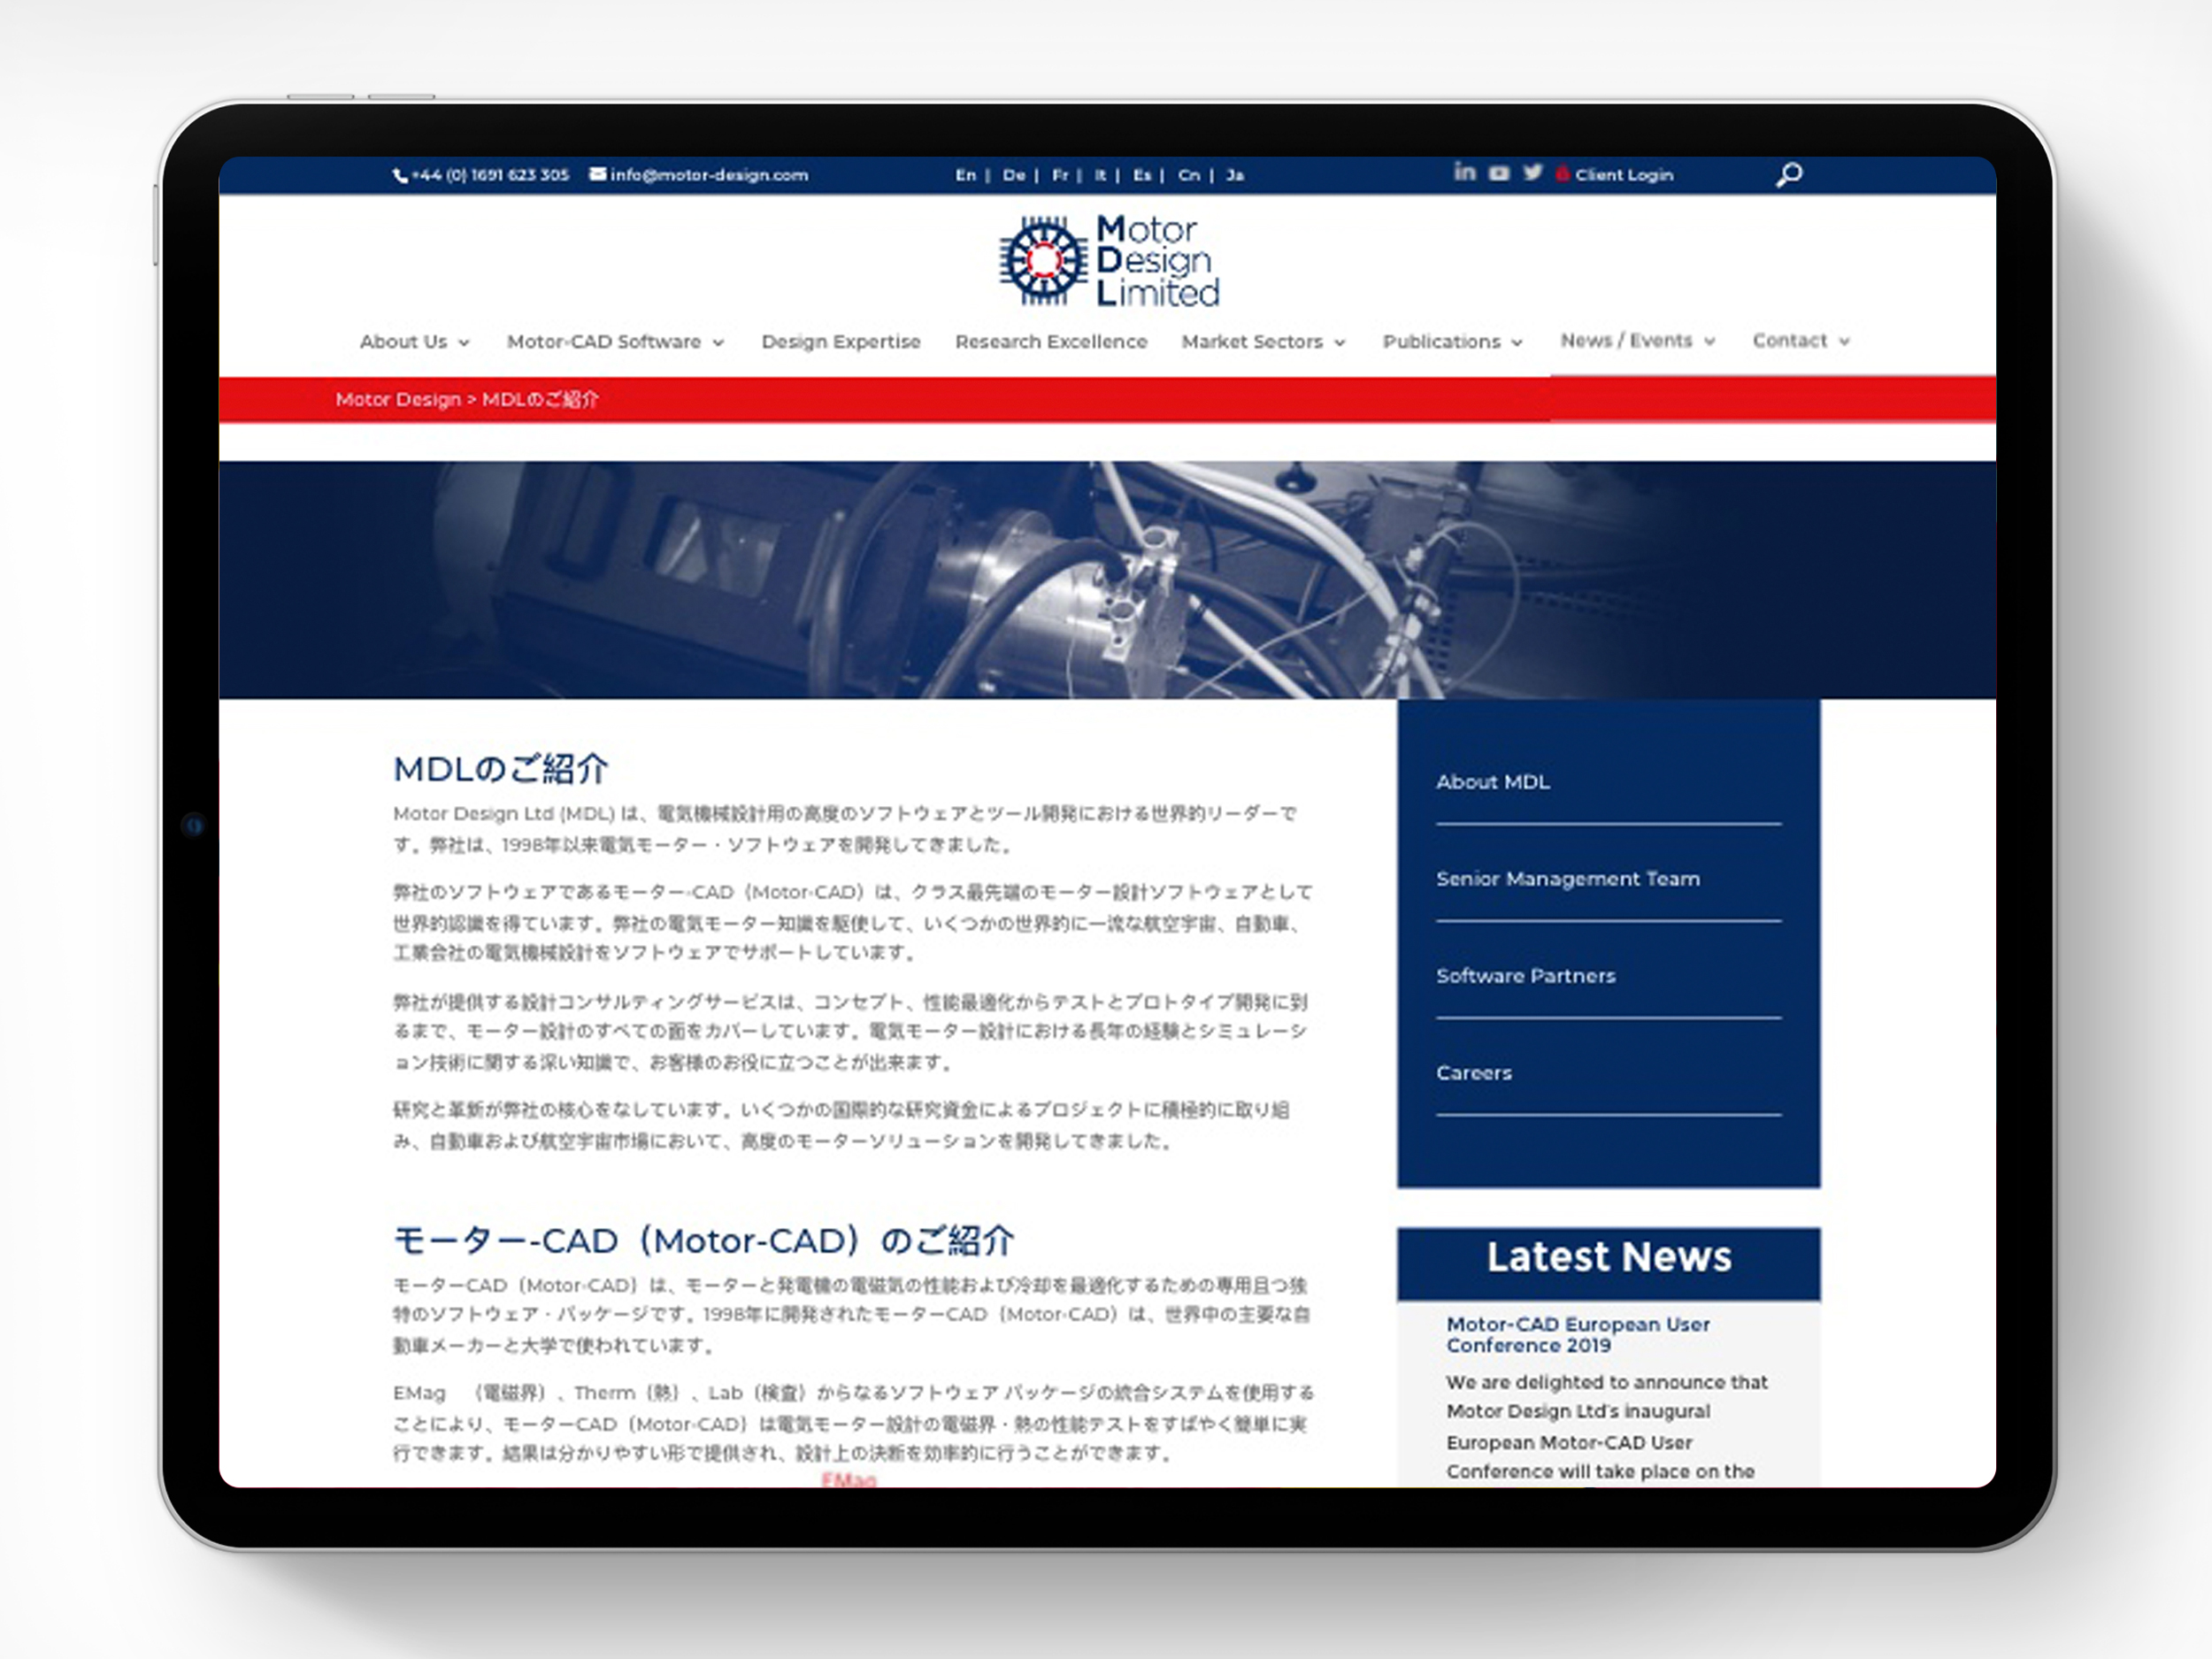 Motor Design website